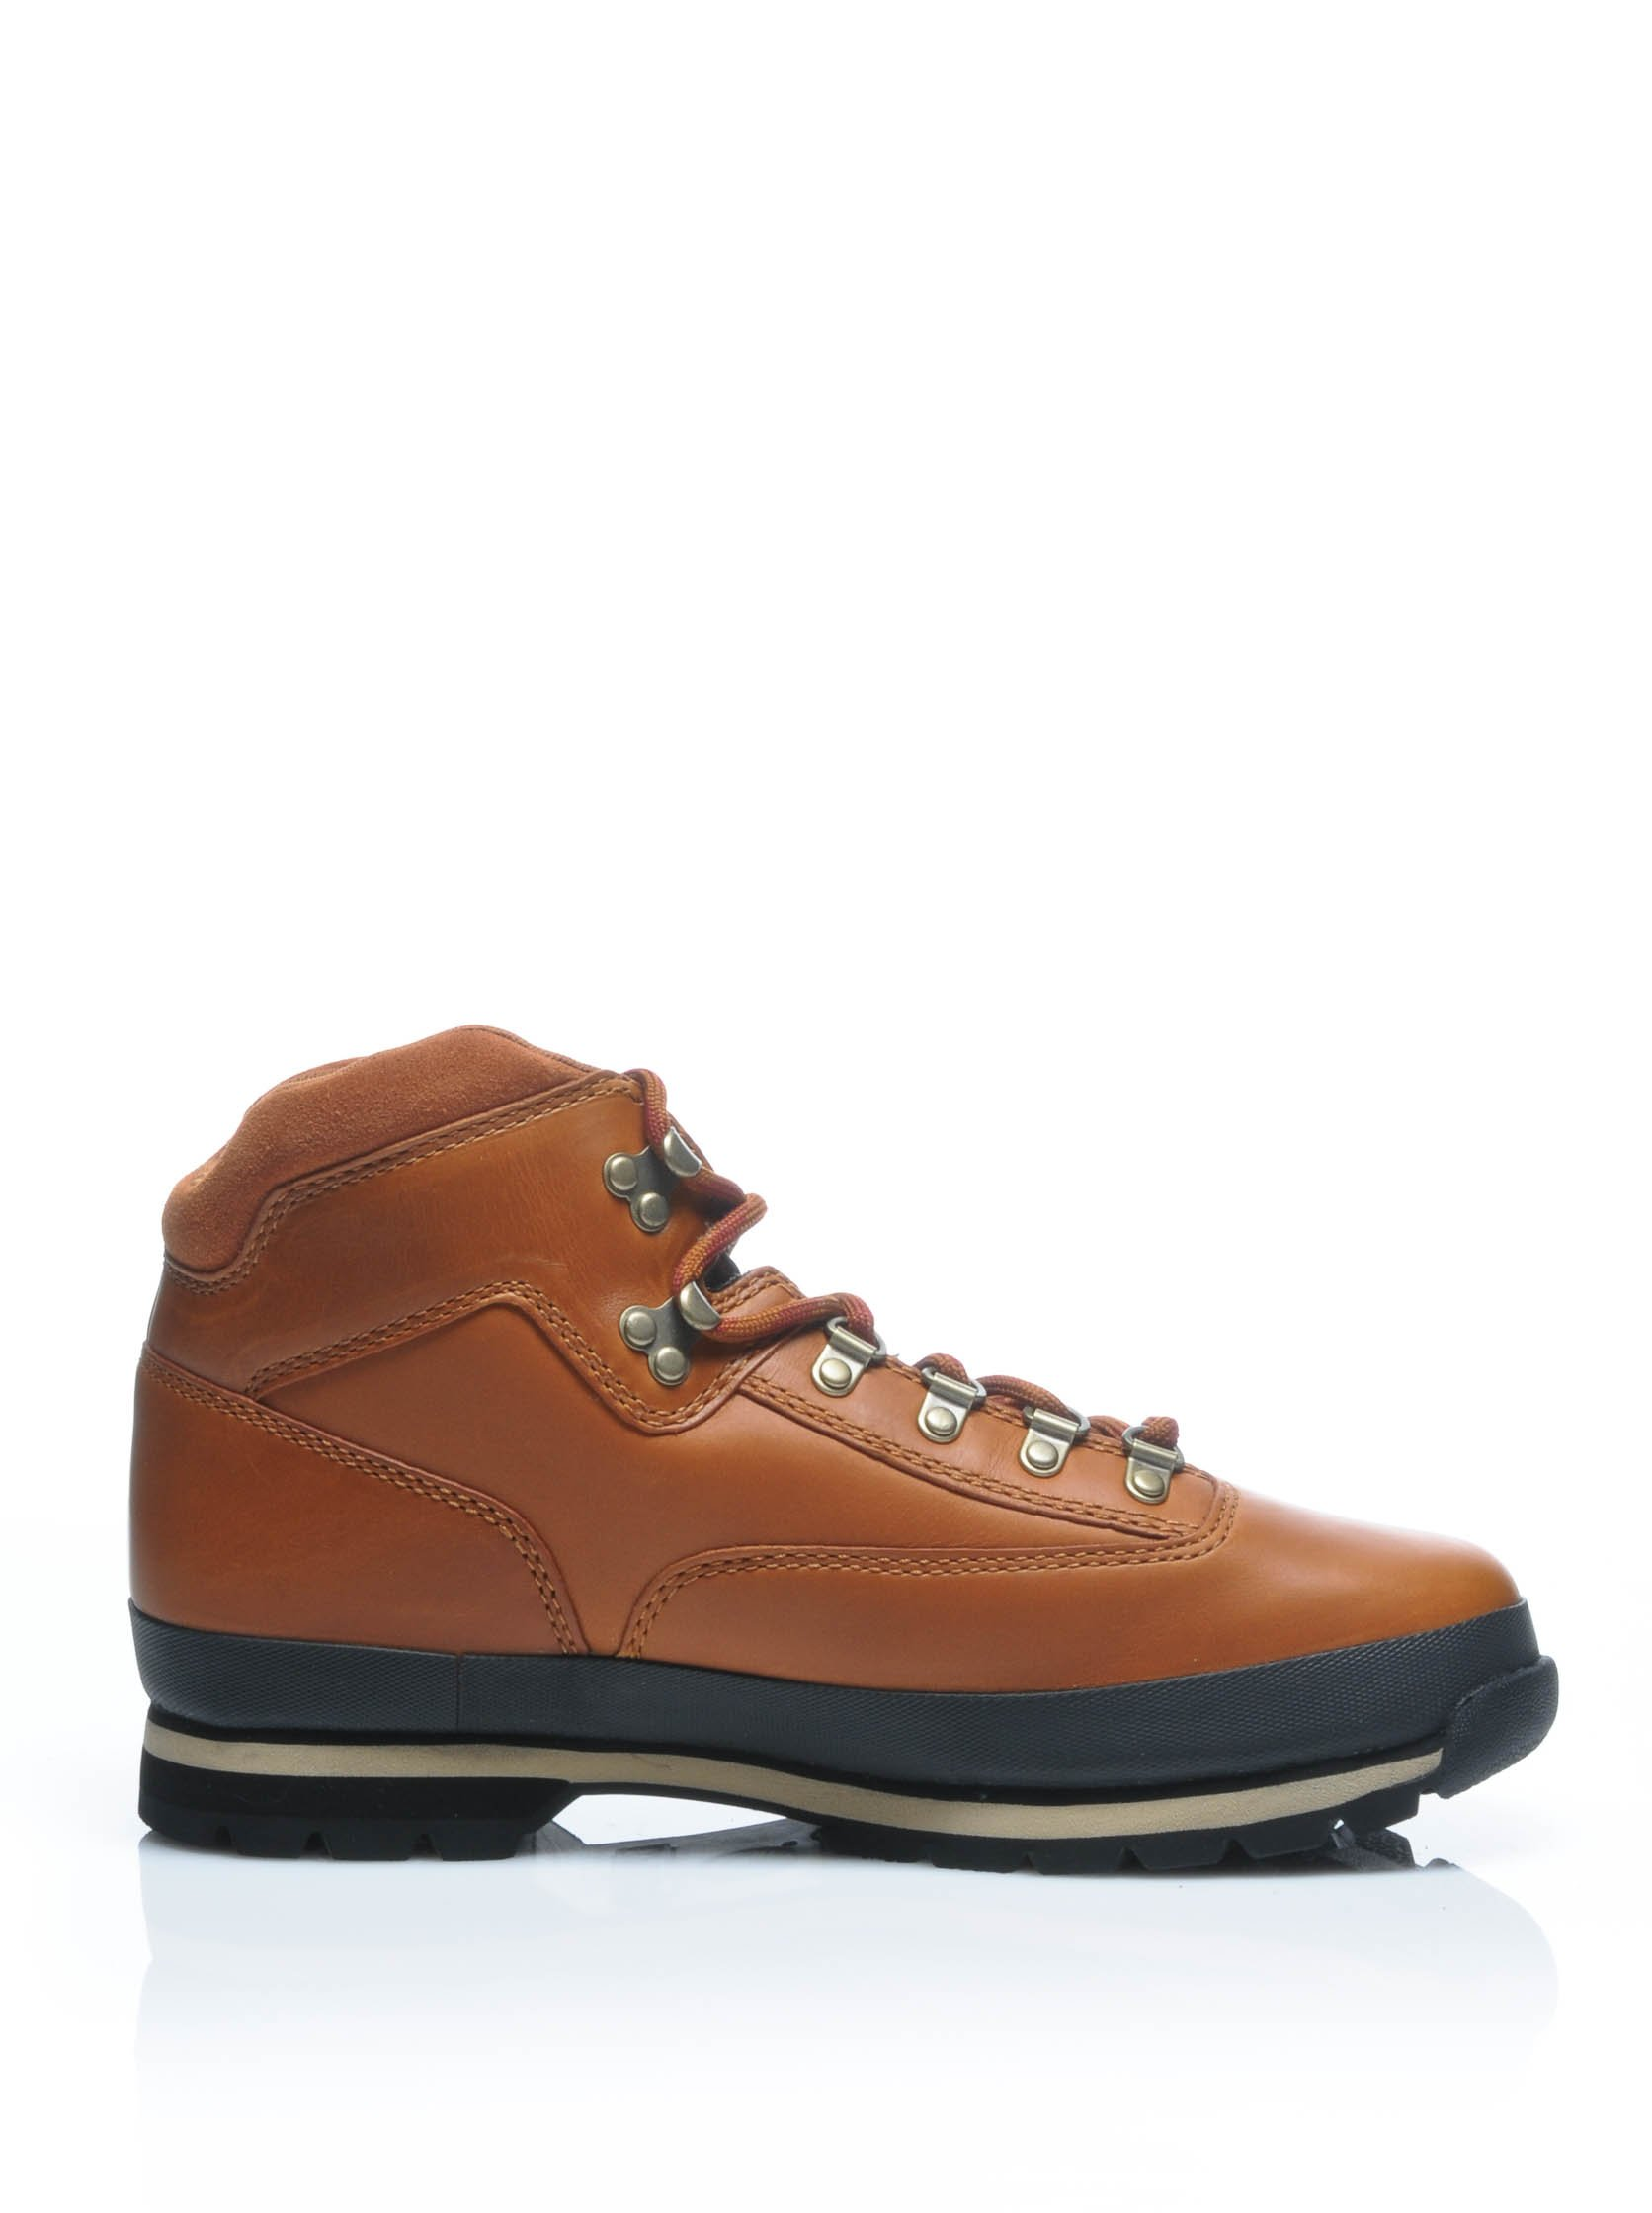 timberland mens eurohiker LTR MD BRN MEDI hi top boots 6602A sneakers (uk 7.5 us 8 eu 41.5) by Timberland (Image #4)